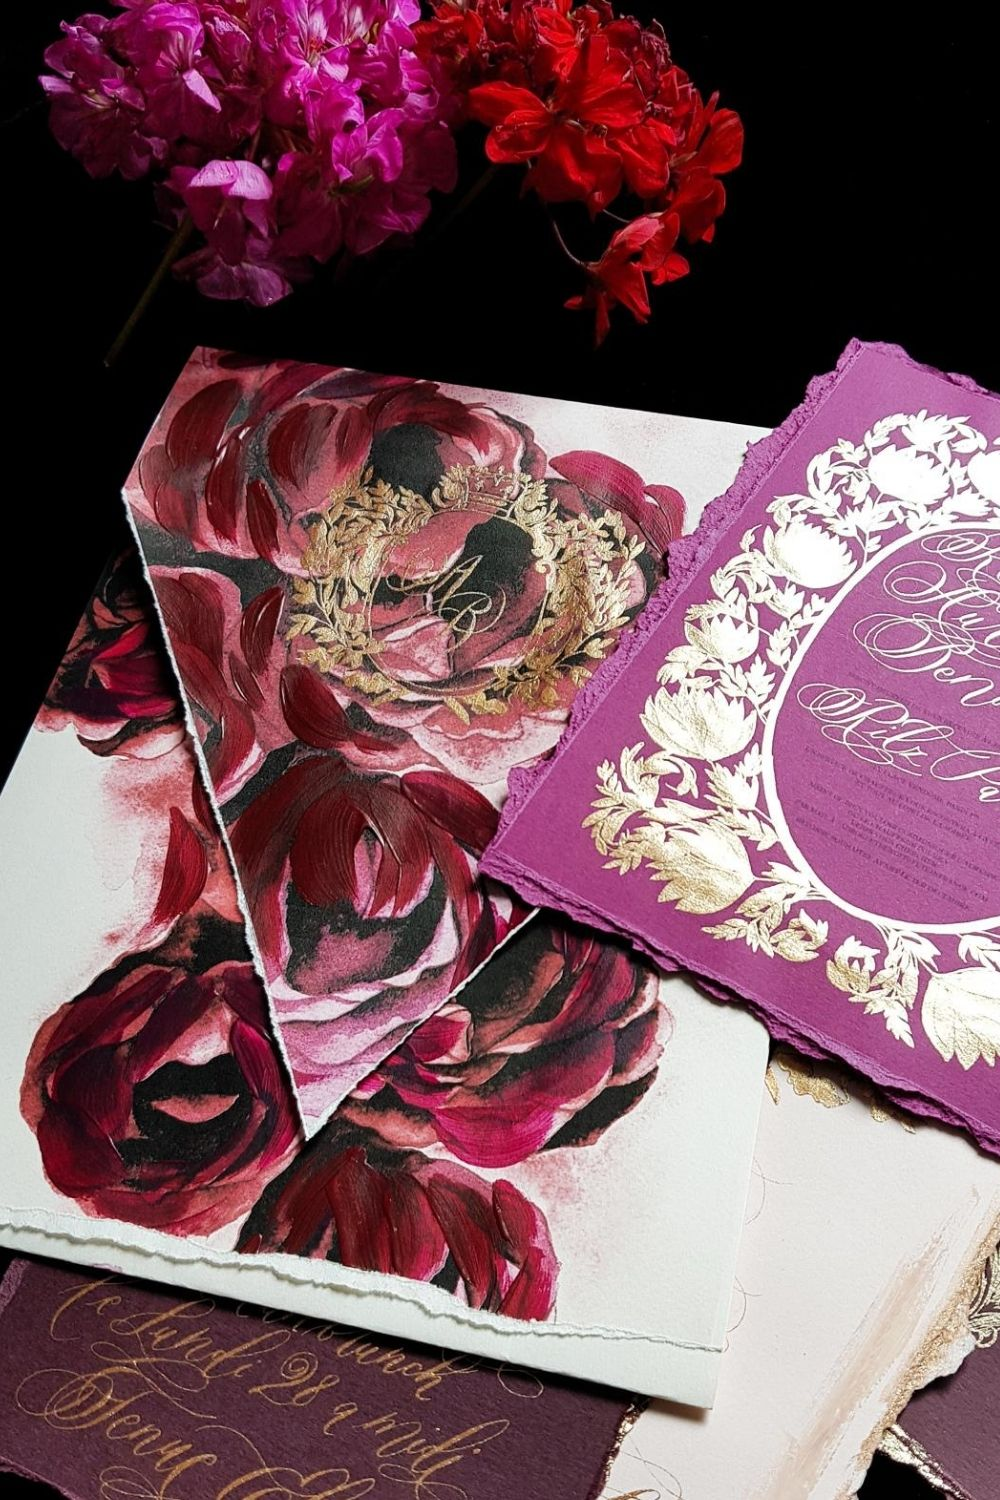 Fine art, high-end wedding invitations for a custom designed burgundy and red wedding in Paris